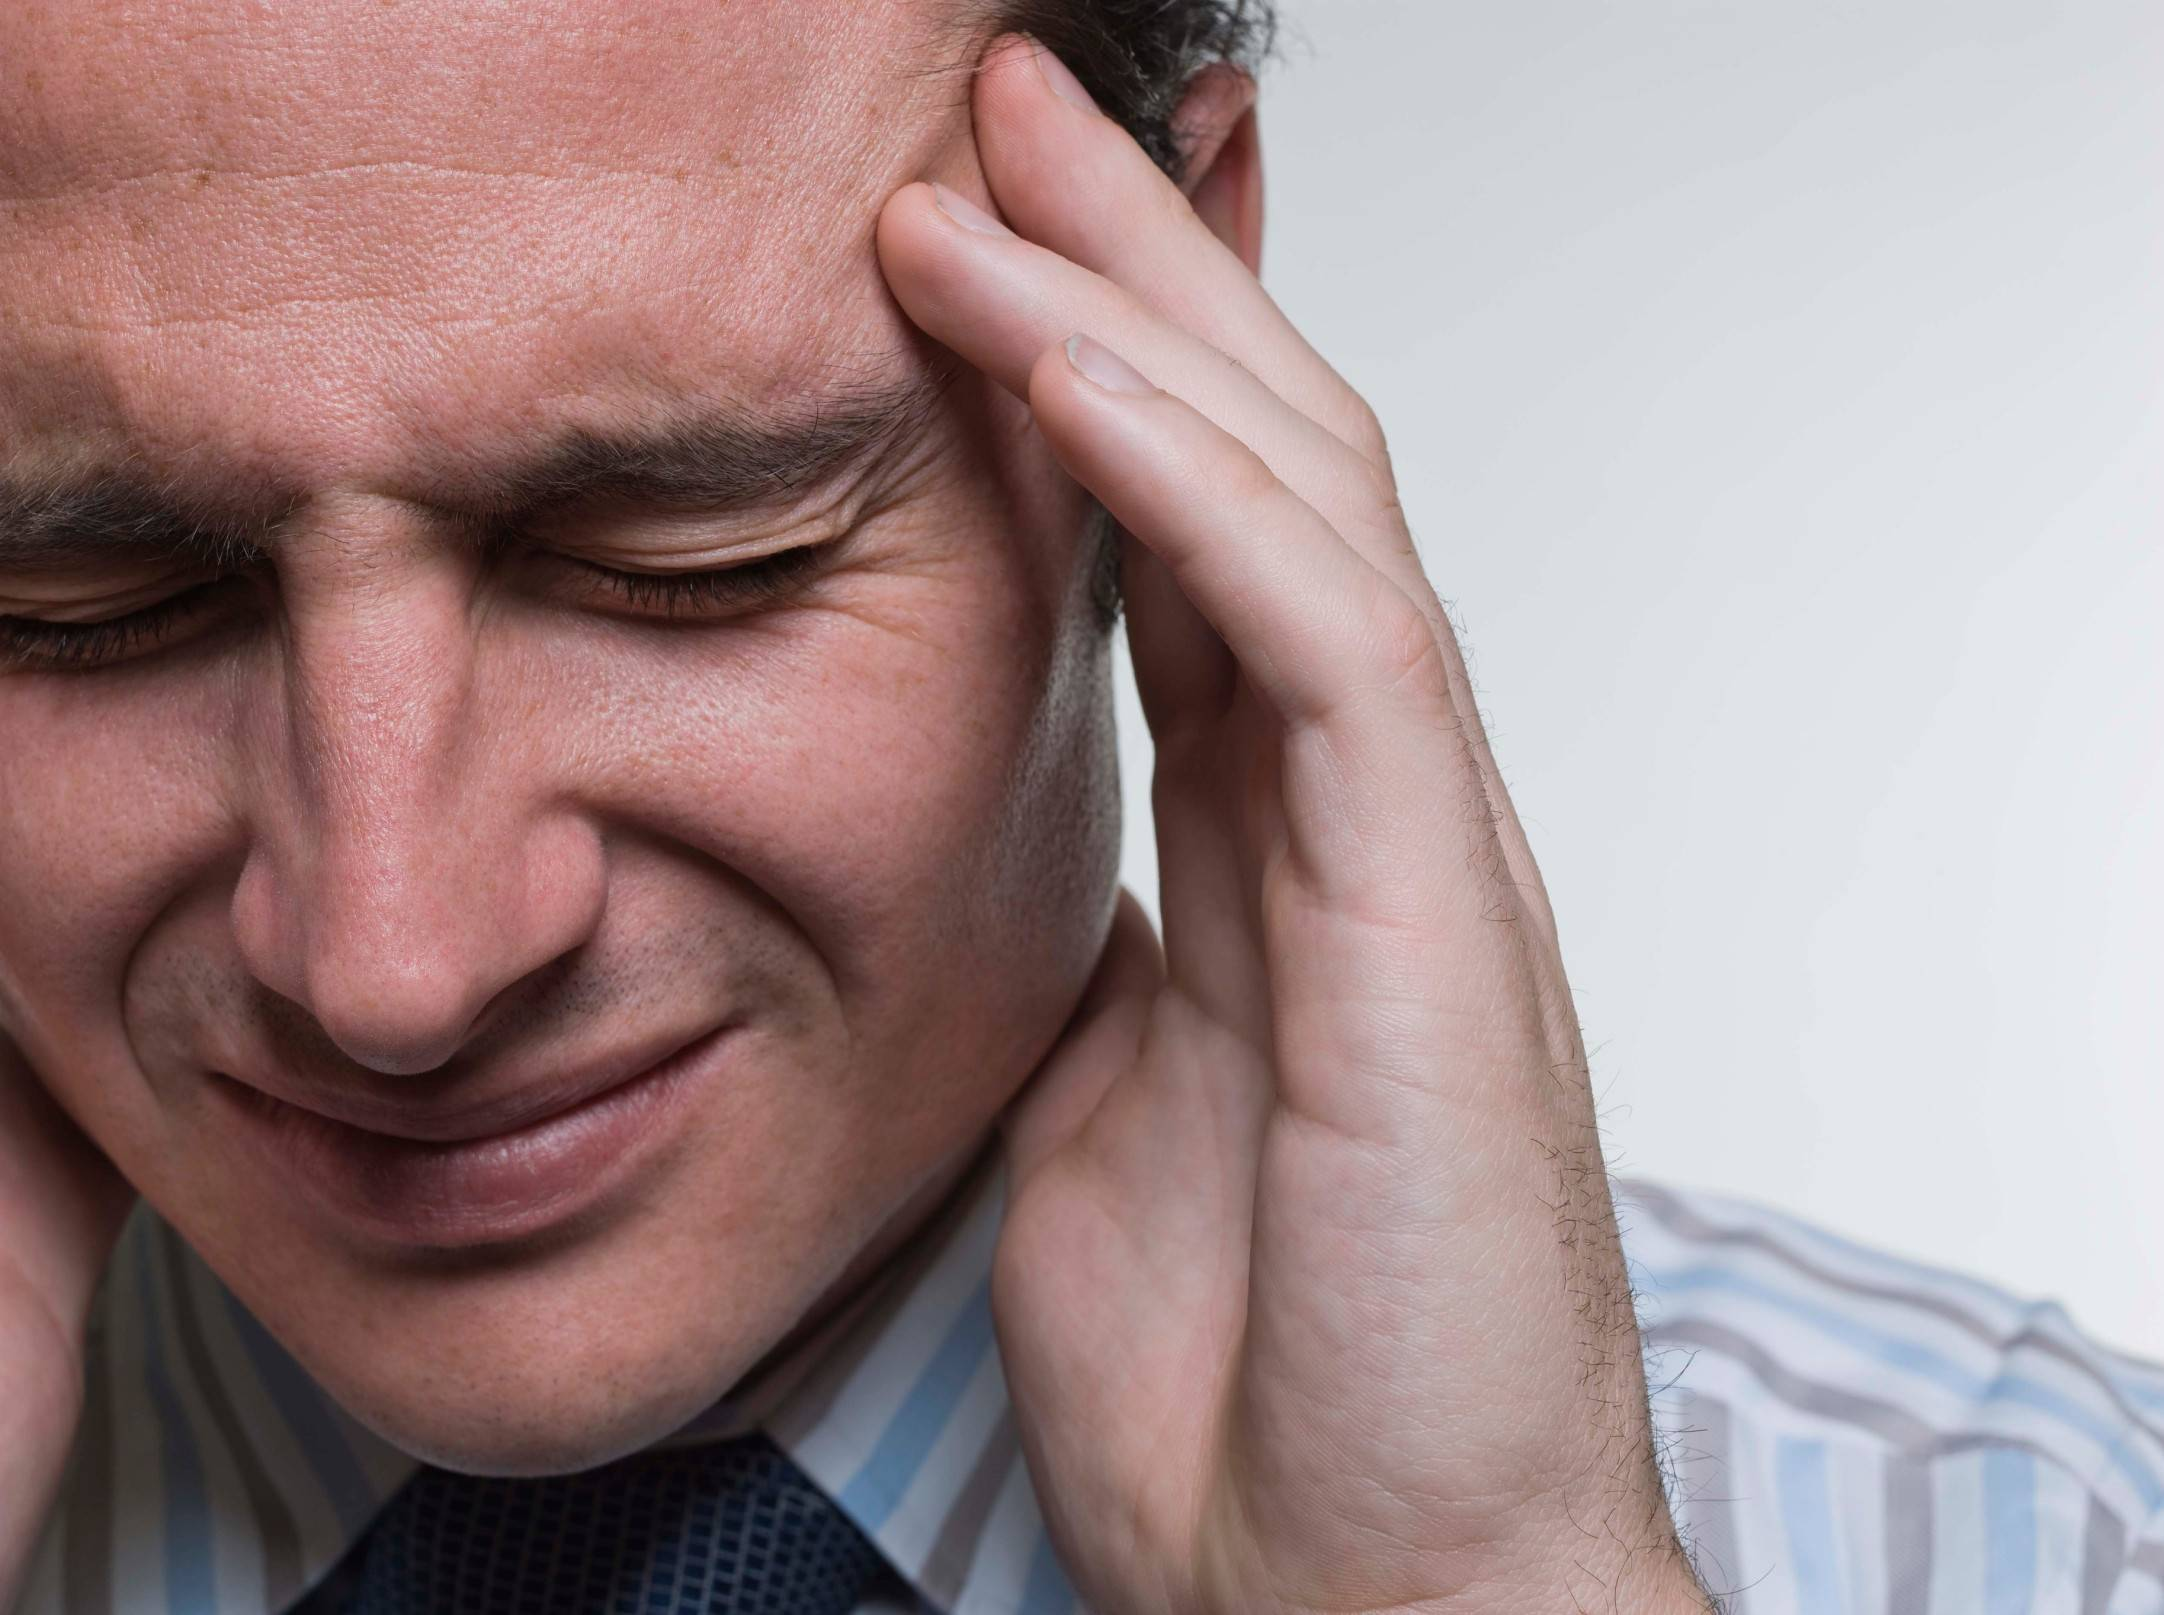 The effects of chronic stress can damage your body